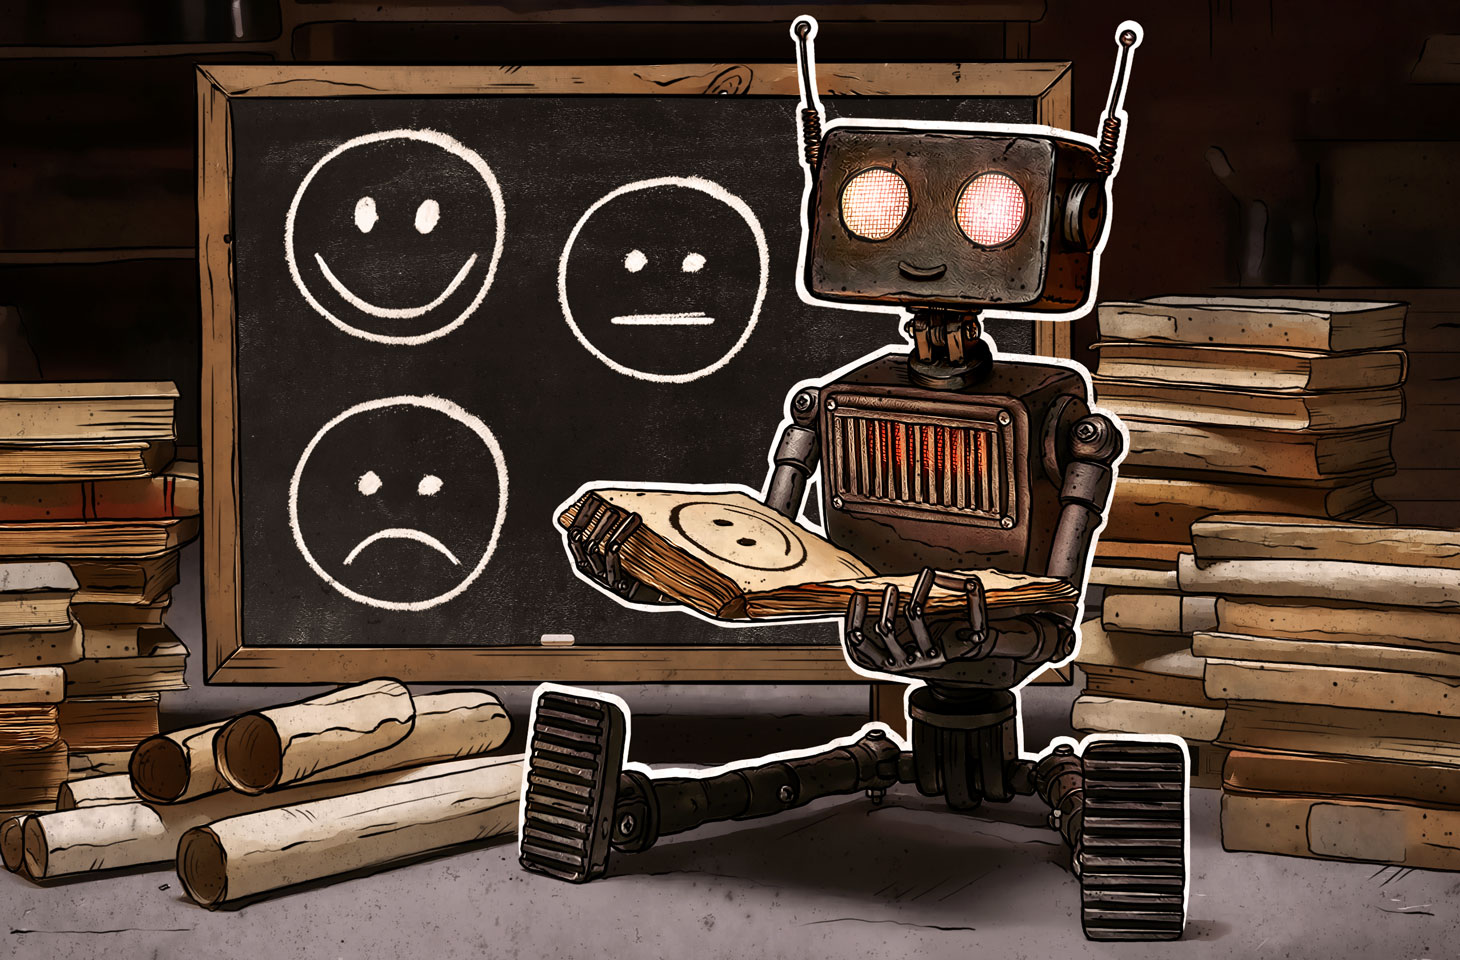 How AI learns to recognize human emotions